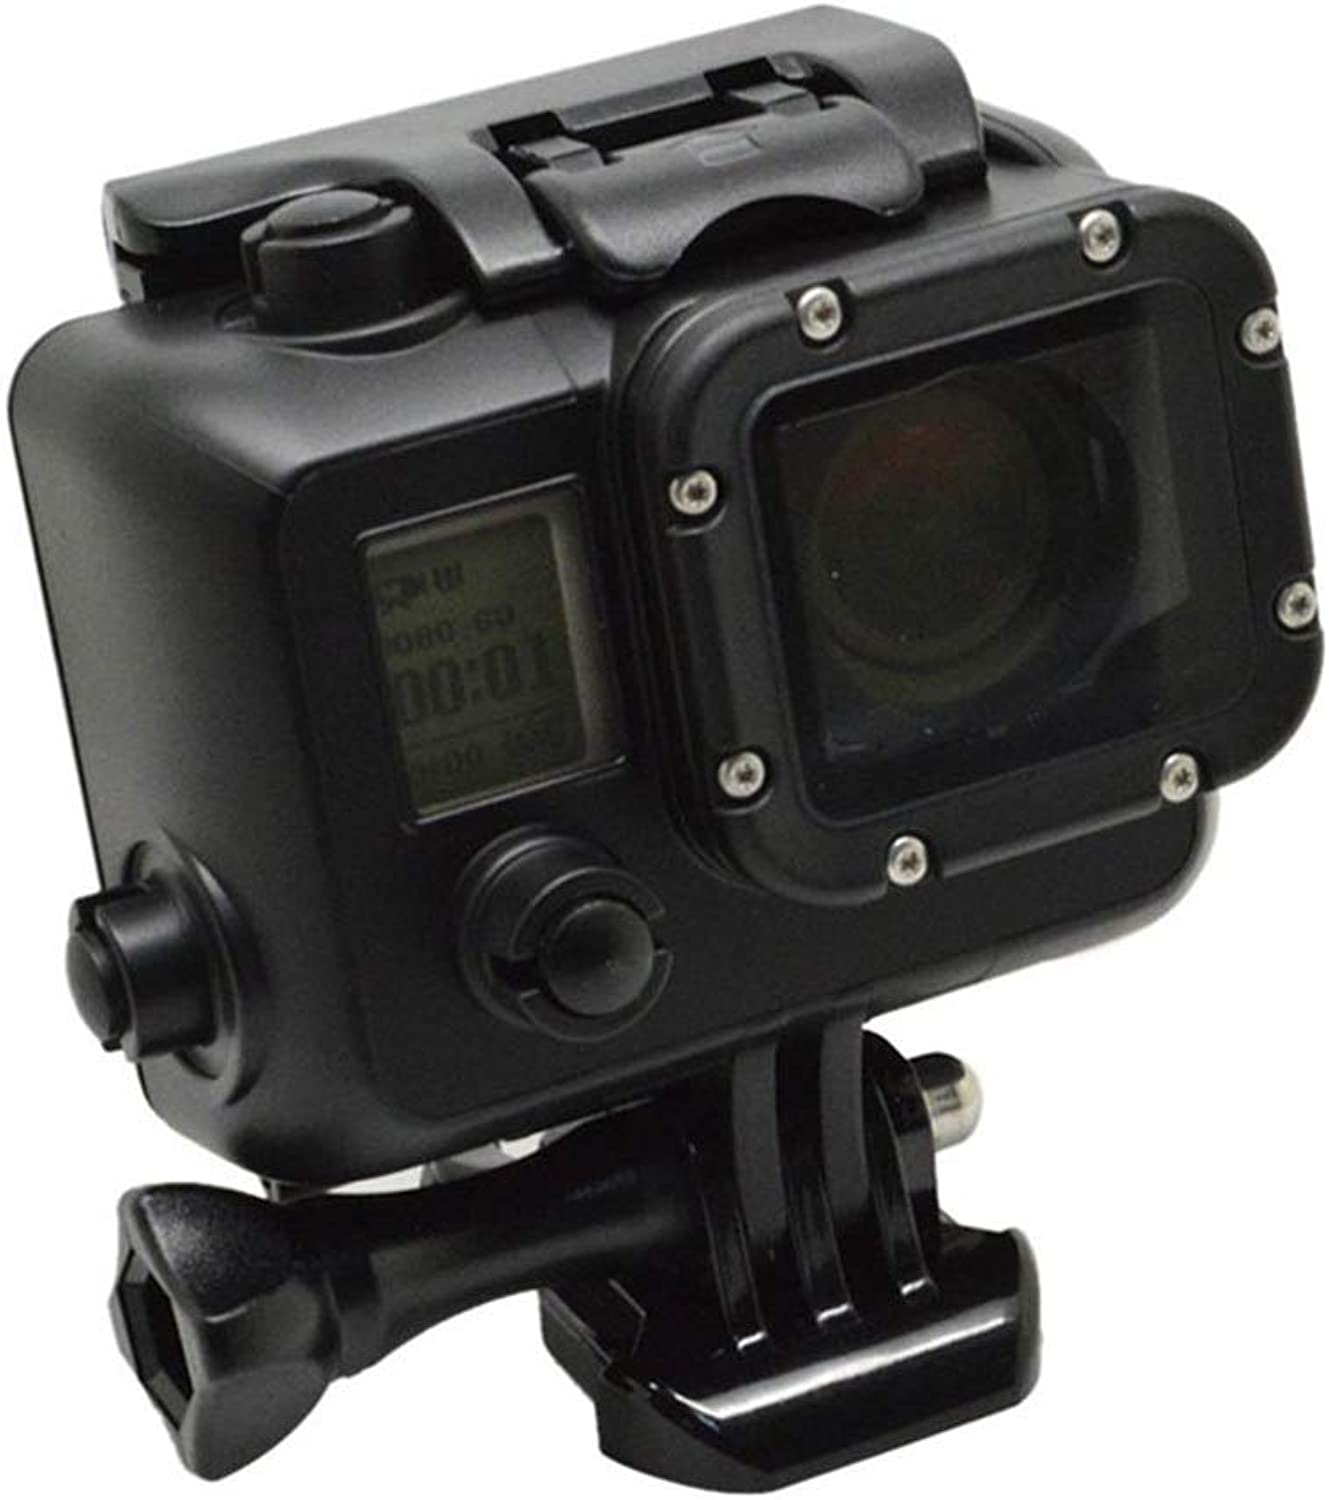 DuDuDu Black 40m Diving Waterproof Case Frame Housing Predective Shell for Gopro Hero 3 3+ 4 Sport Action Camera